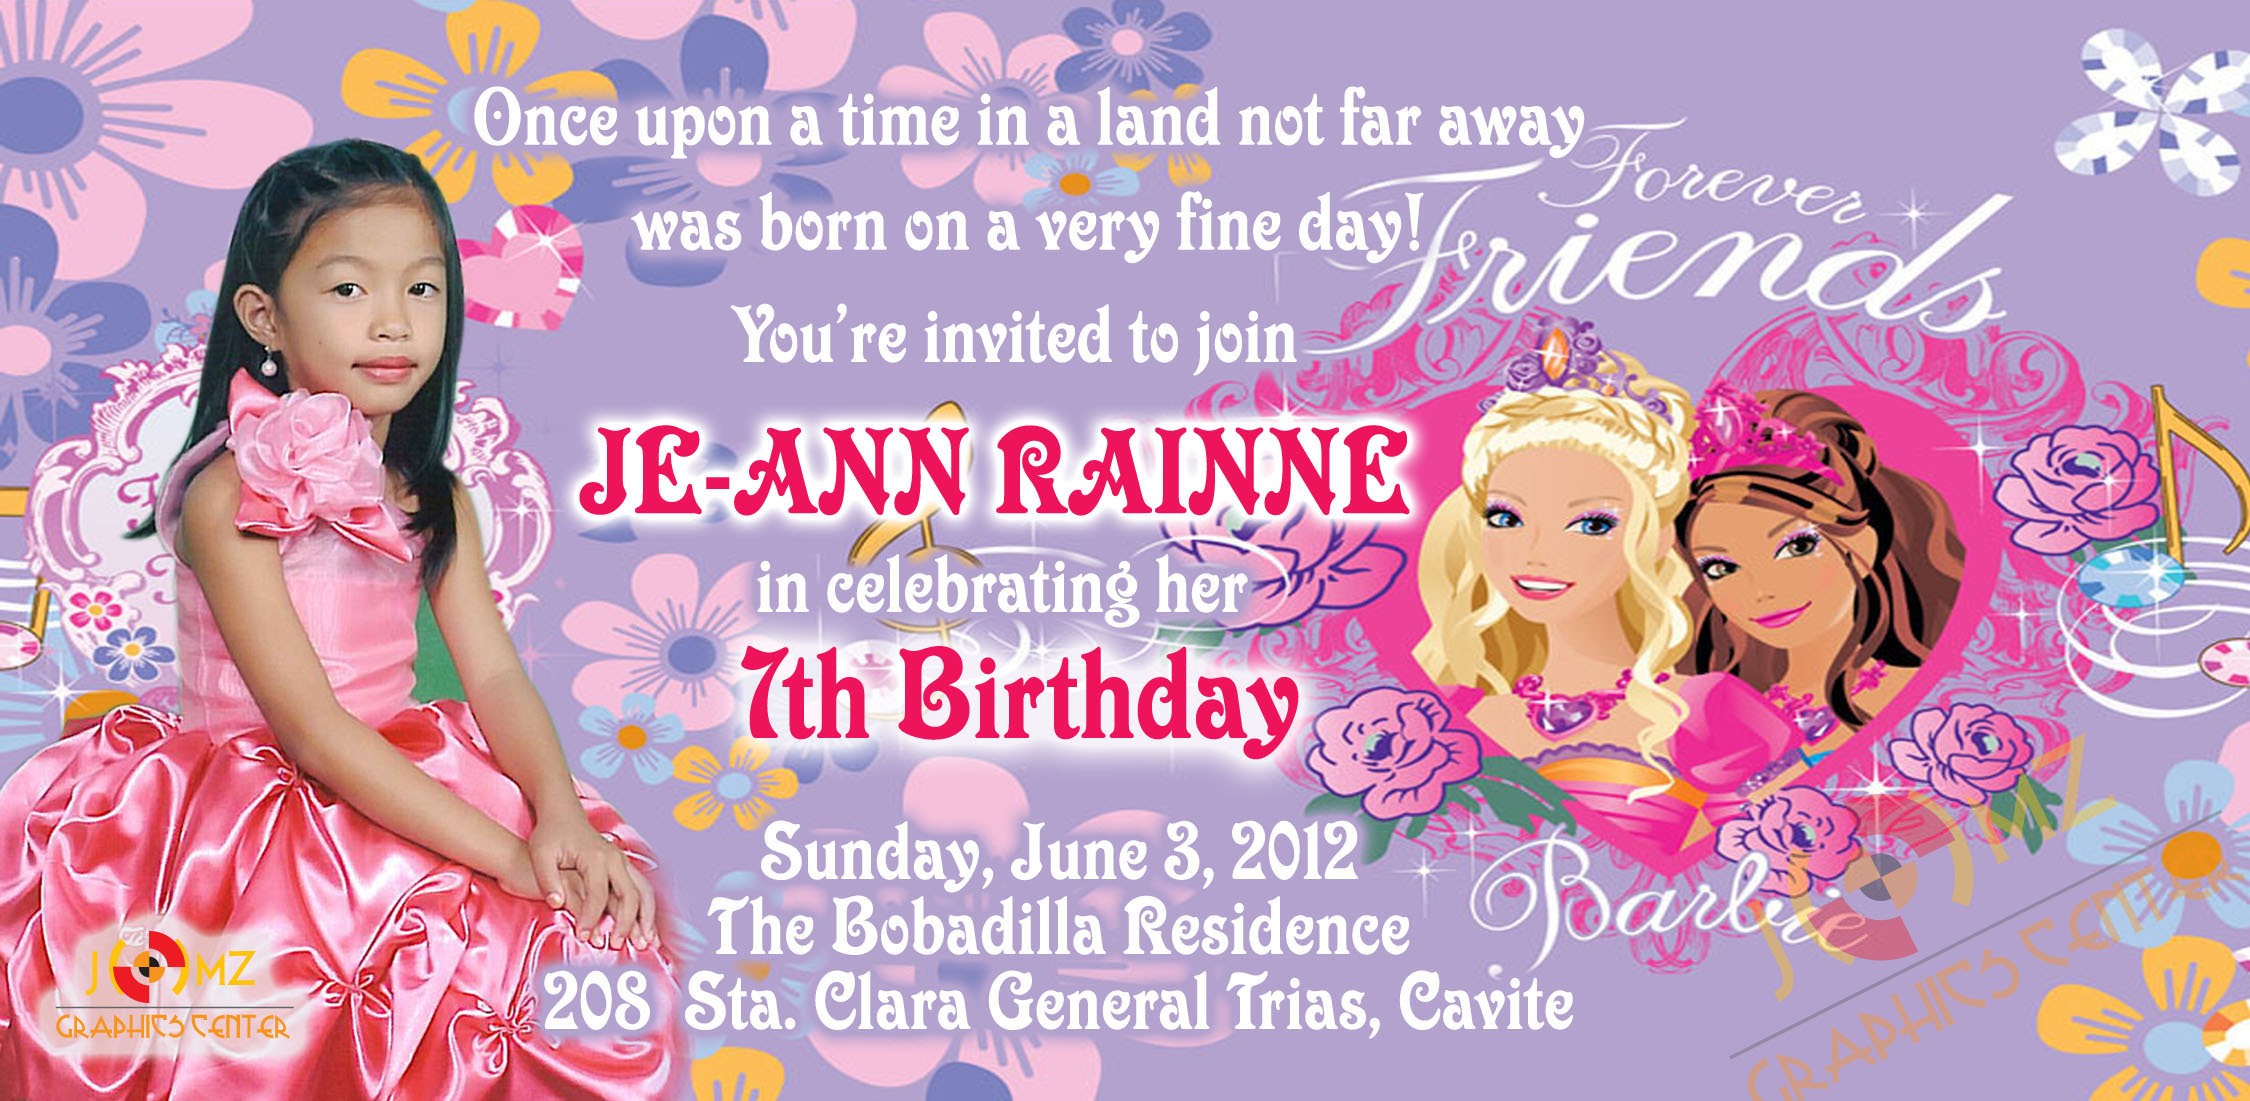 happy birthday tarpaulin maker ; 7th-birthday-invitation-card-maker-7th-birthday-invitation-and-get-inspiration-to-create-the-birthday-invitation-design-of-your-dreams-2